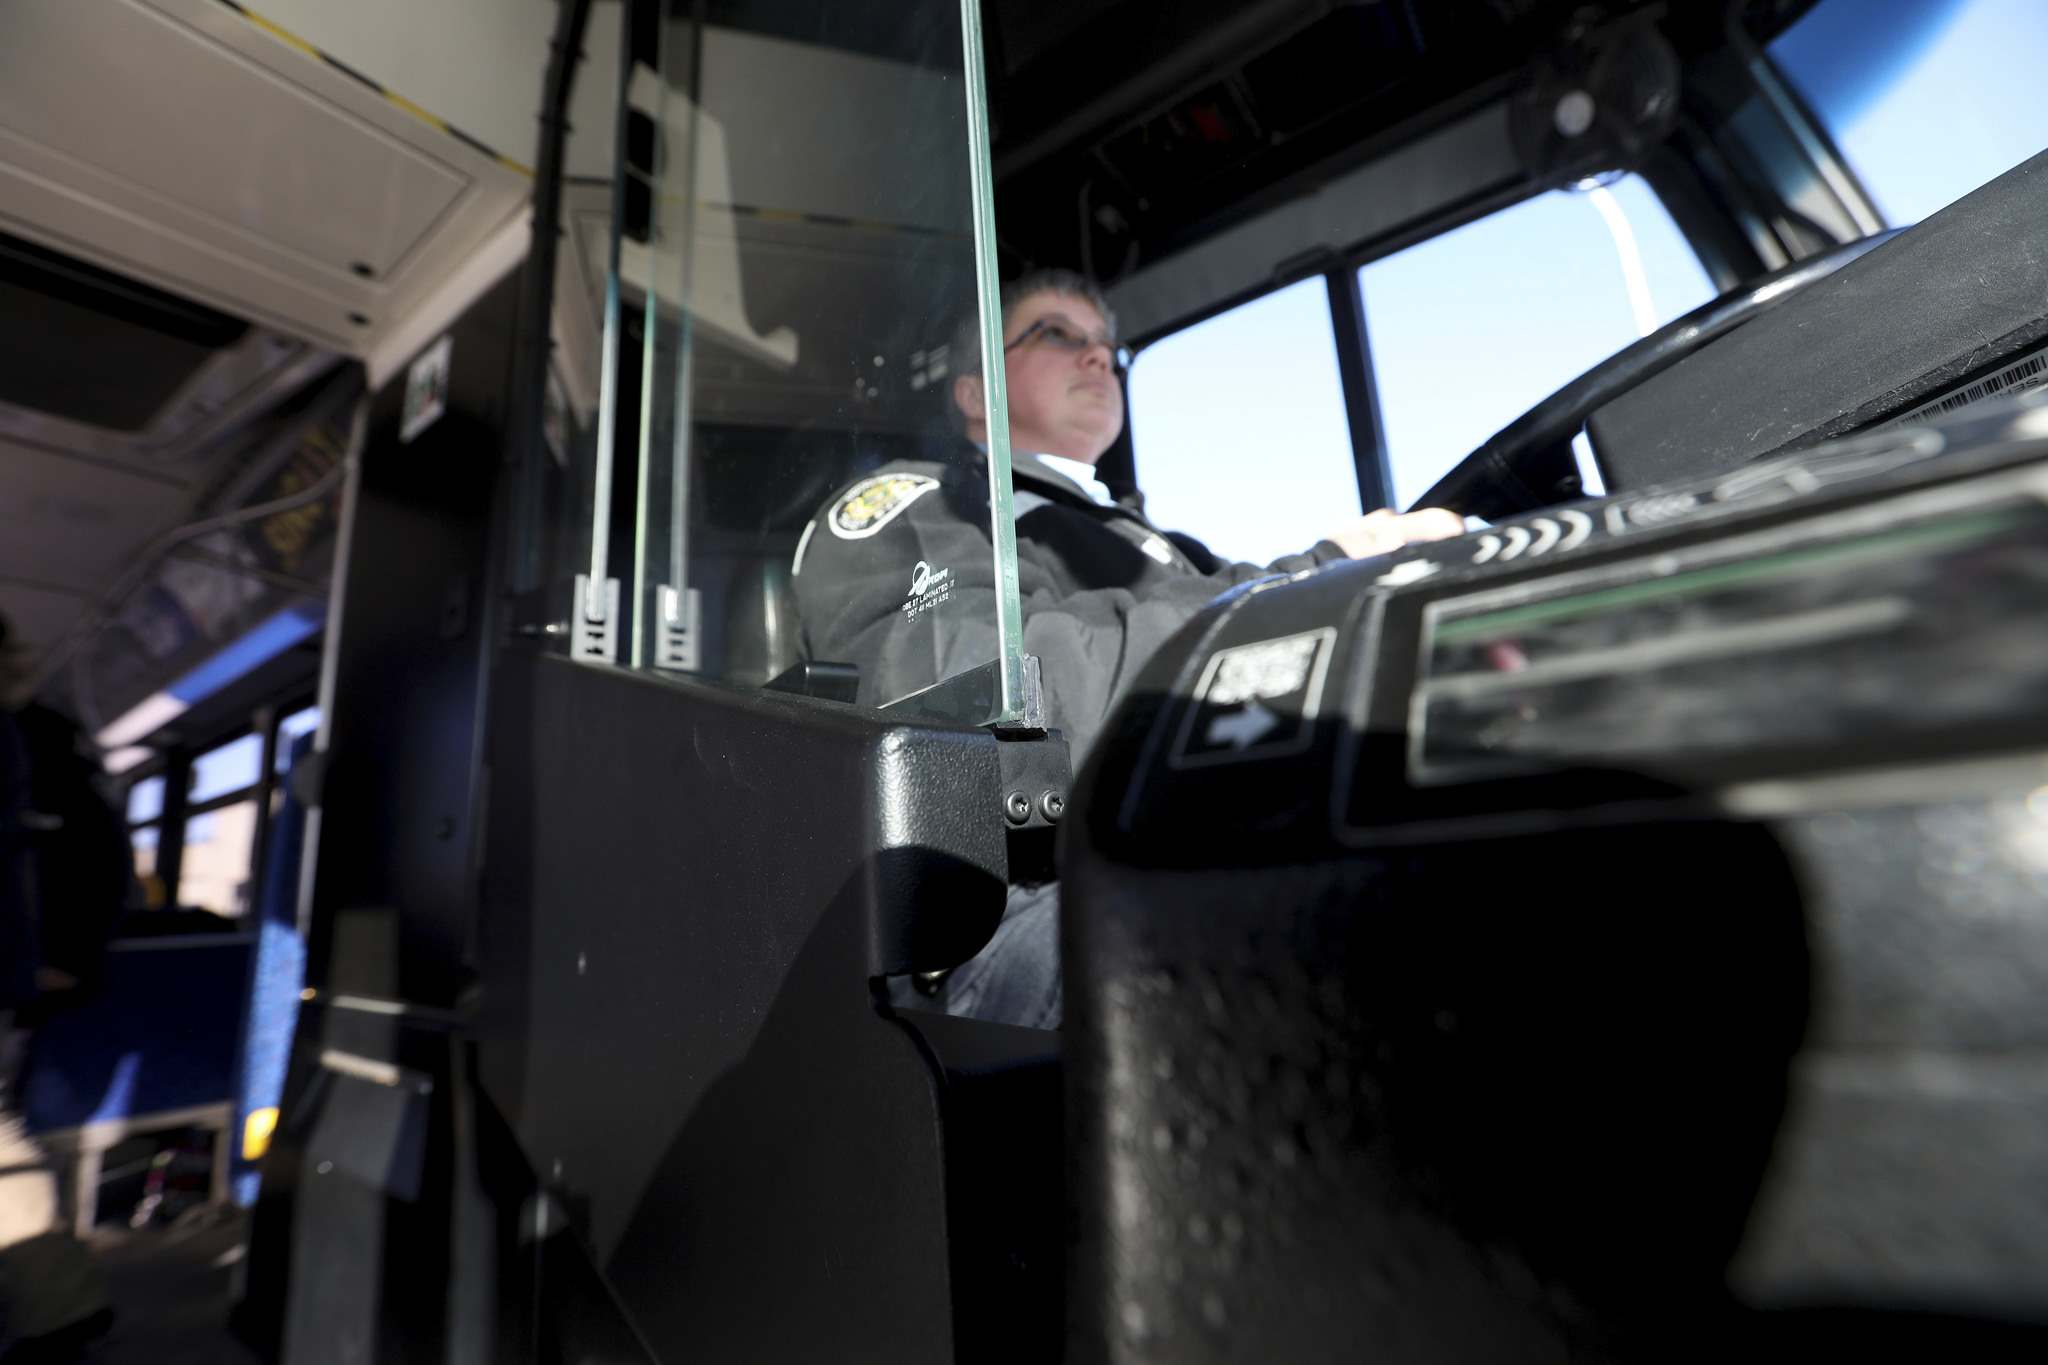 On Tuesday, the city&#39;s public works committee voted to install safety shields on the city&#39;s fleet of 630 buses over the next 18 months. (Ruth Bonneville / Winnipeg Free Press files)</p>